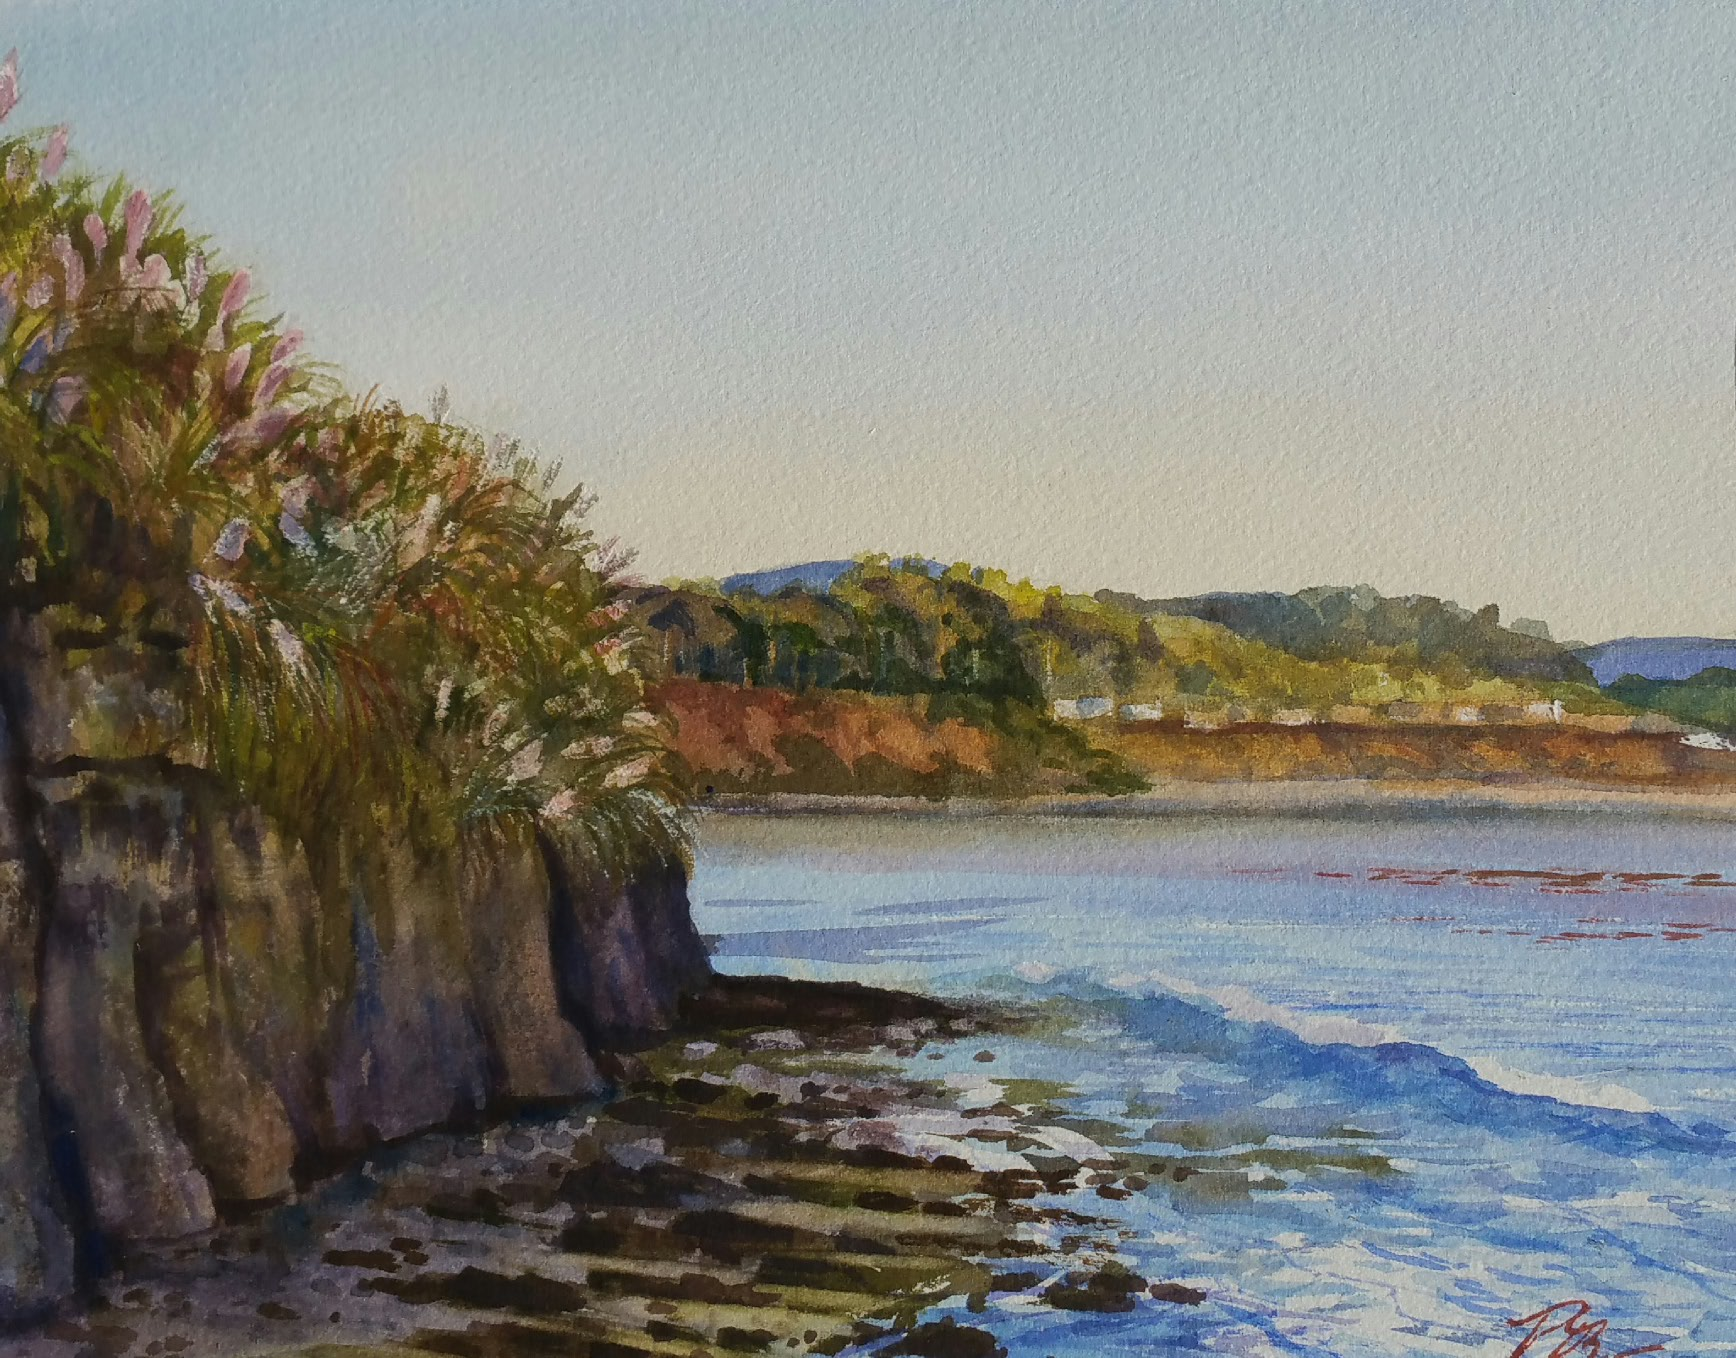 Evening at the Break_Peggy Wynne Borgman_watercolor_9 x 12